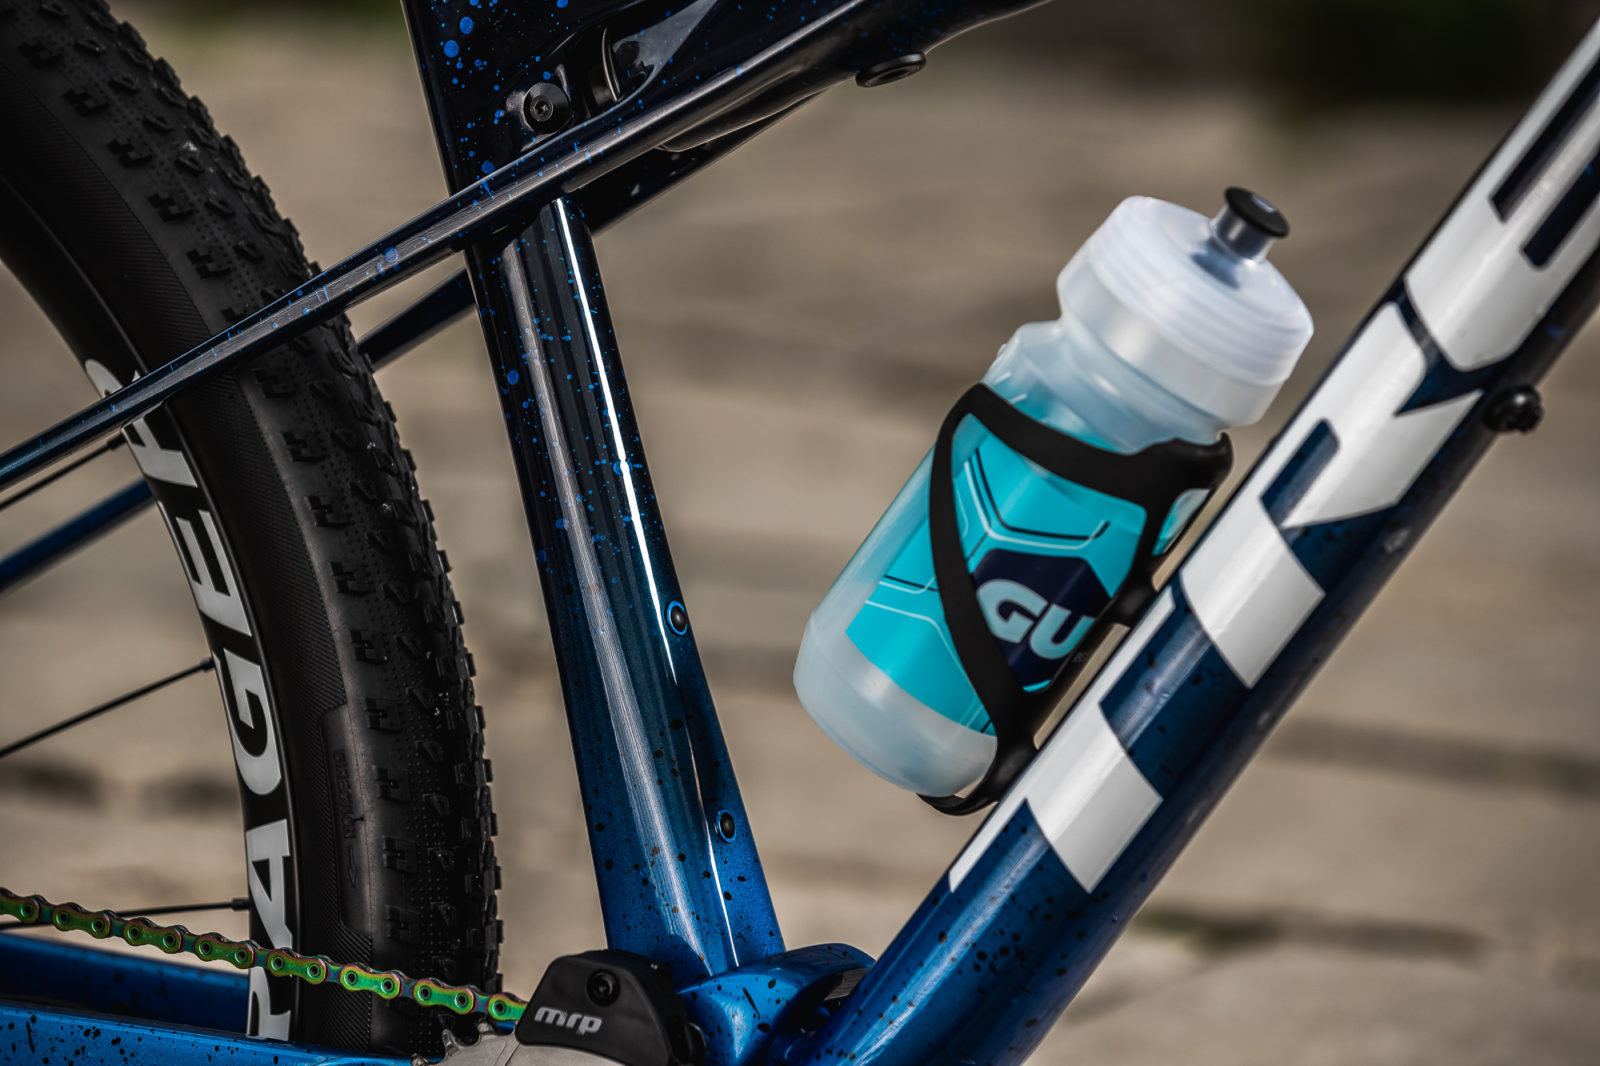 The Trek Supercaliber offers room for two water bottles.